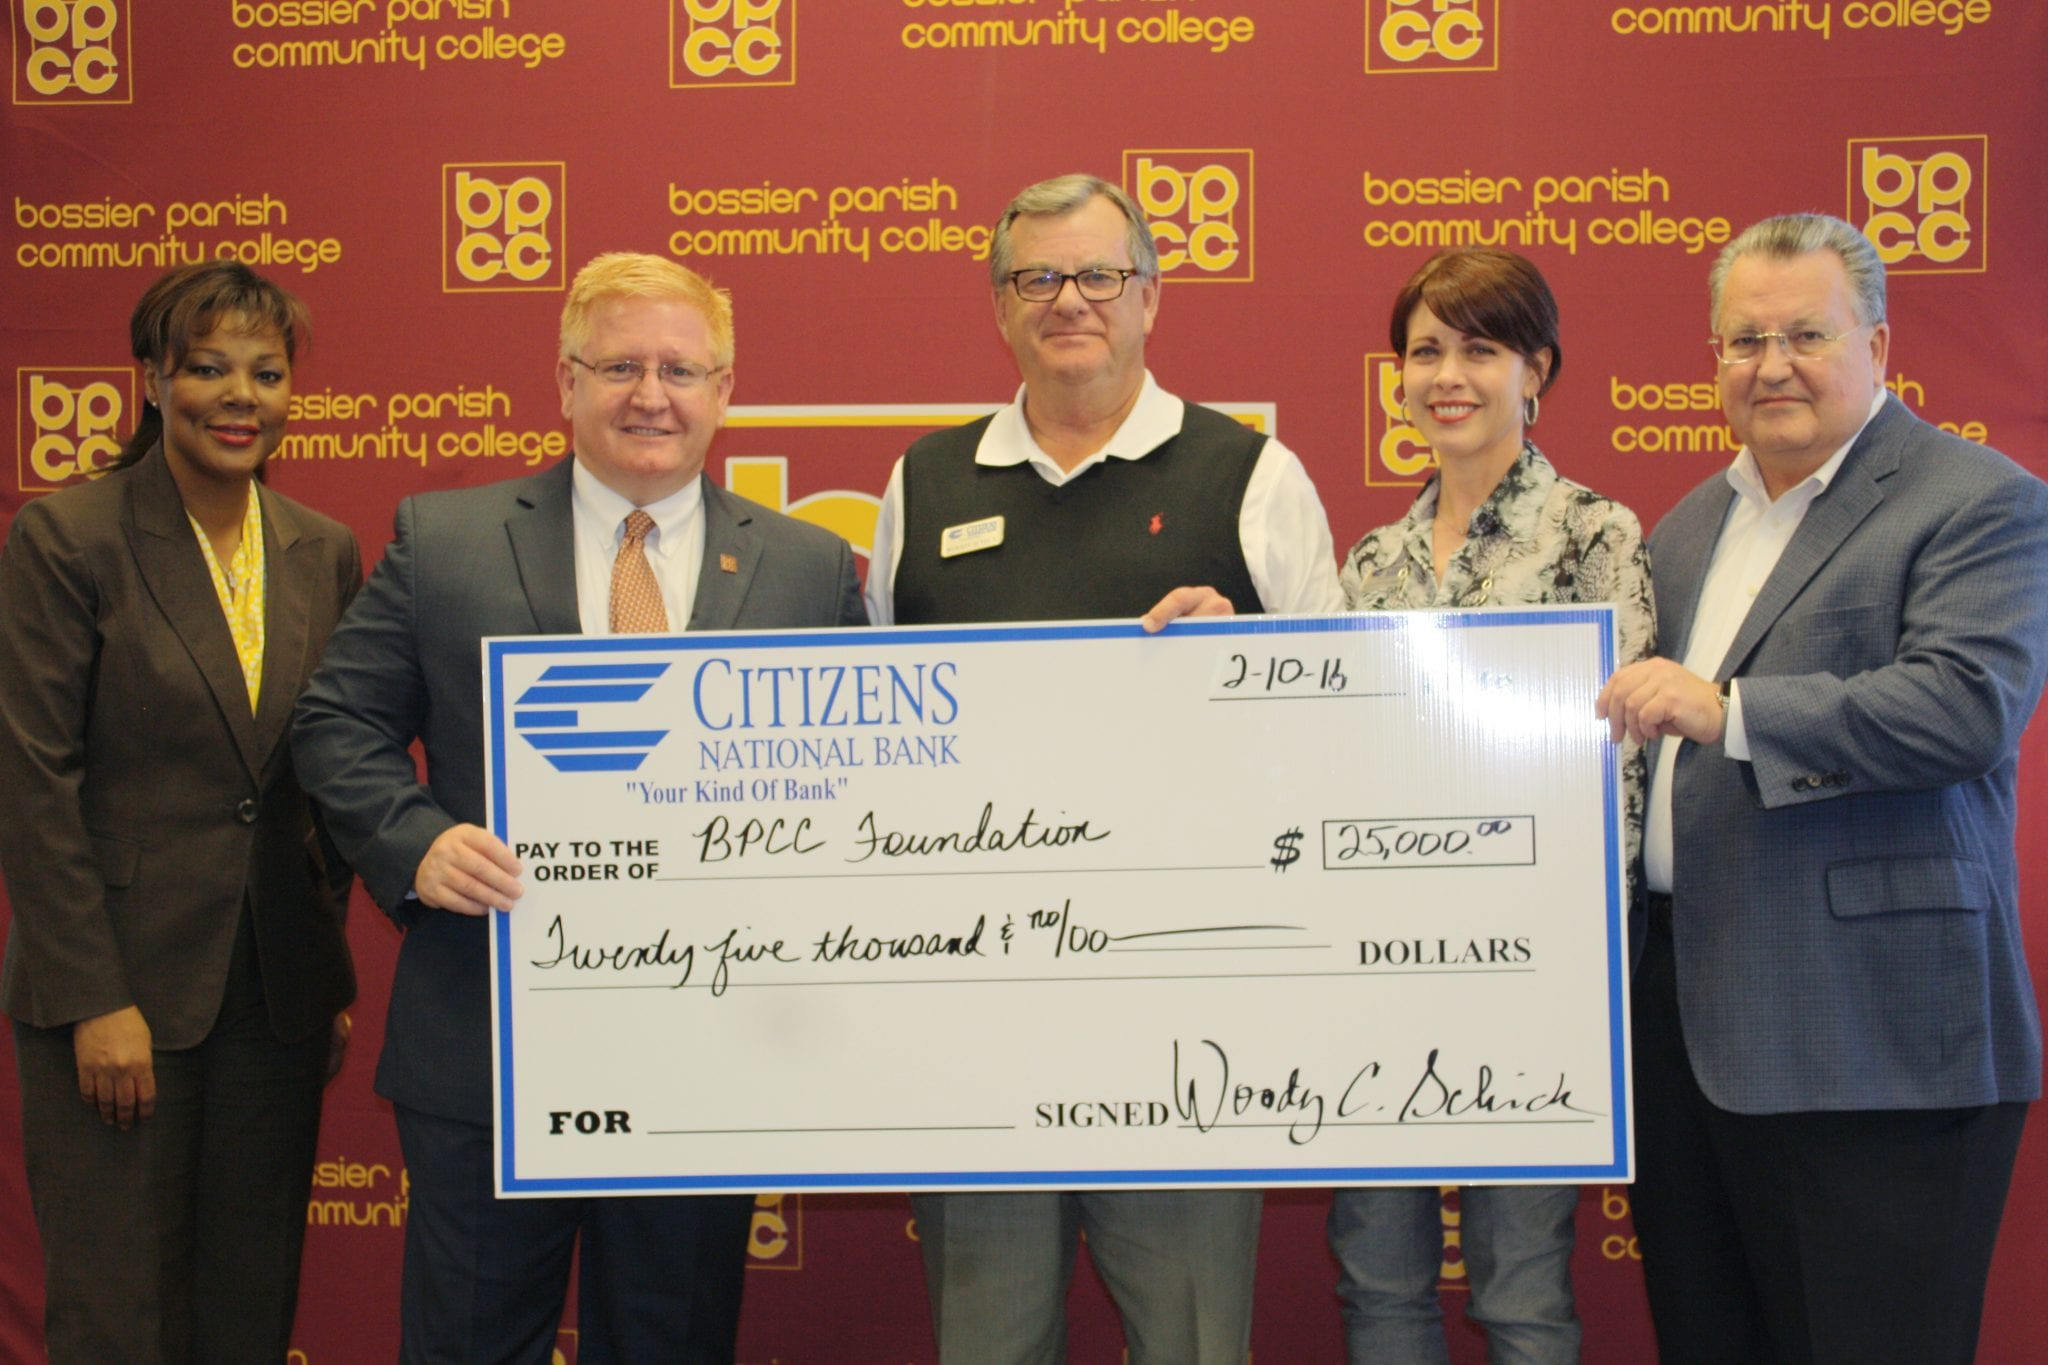 citizens national bank careers